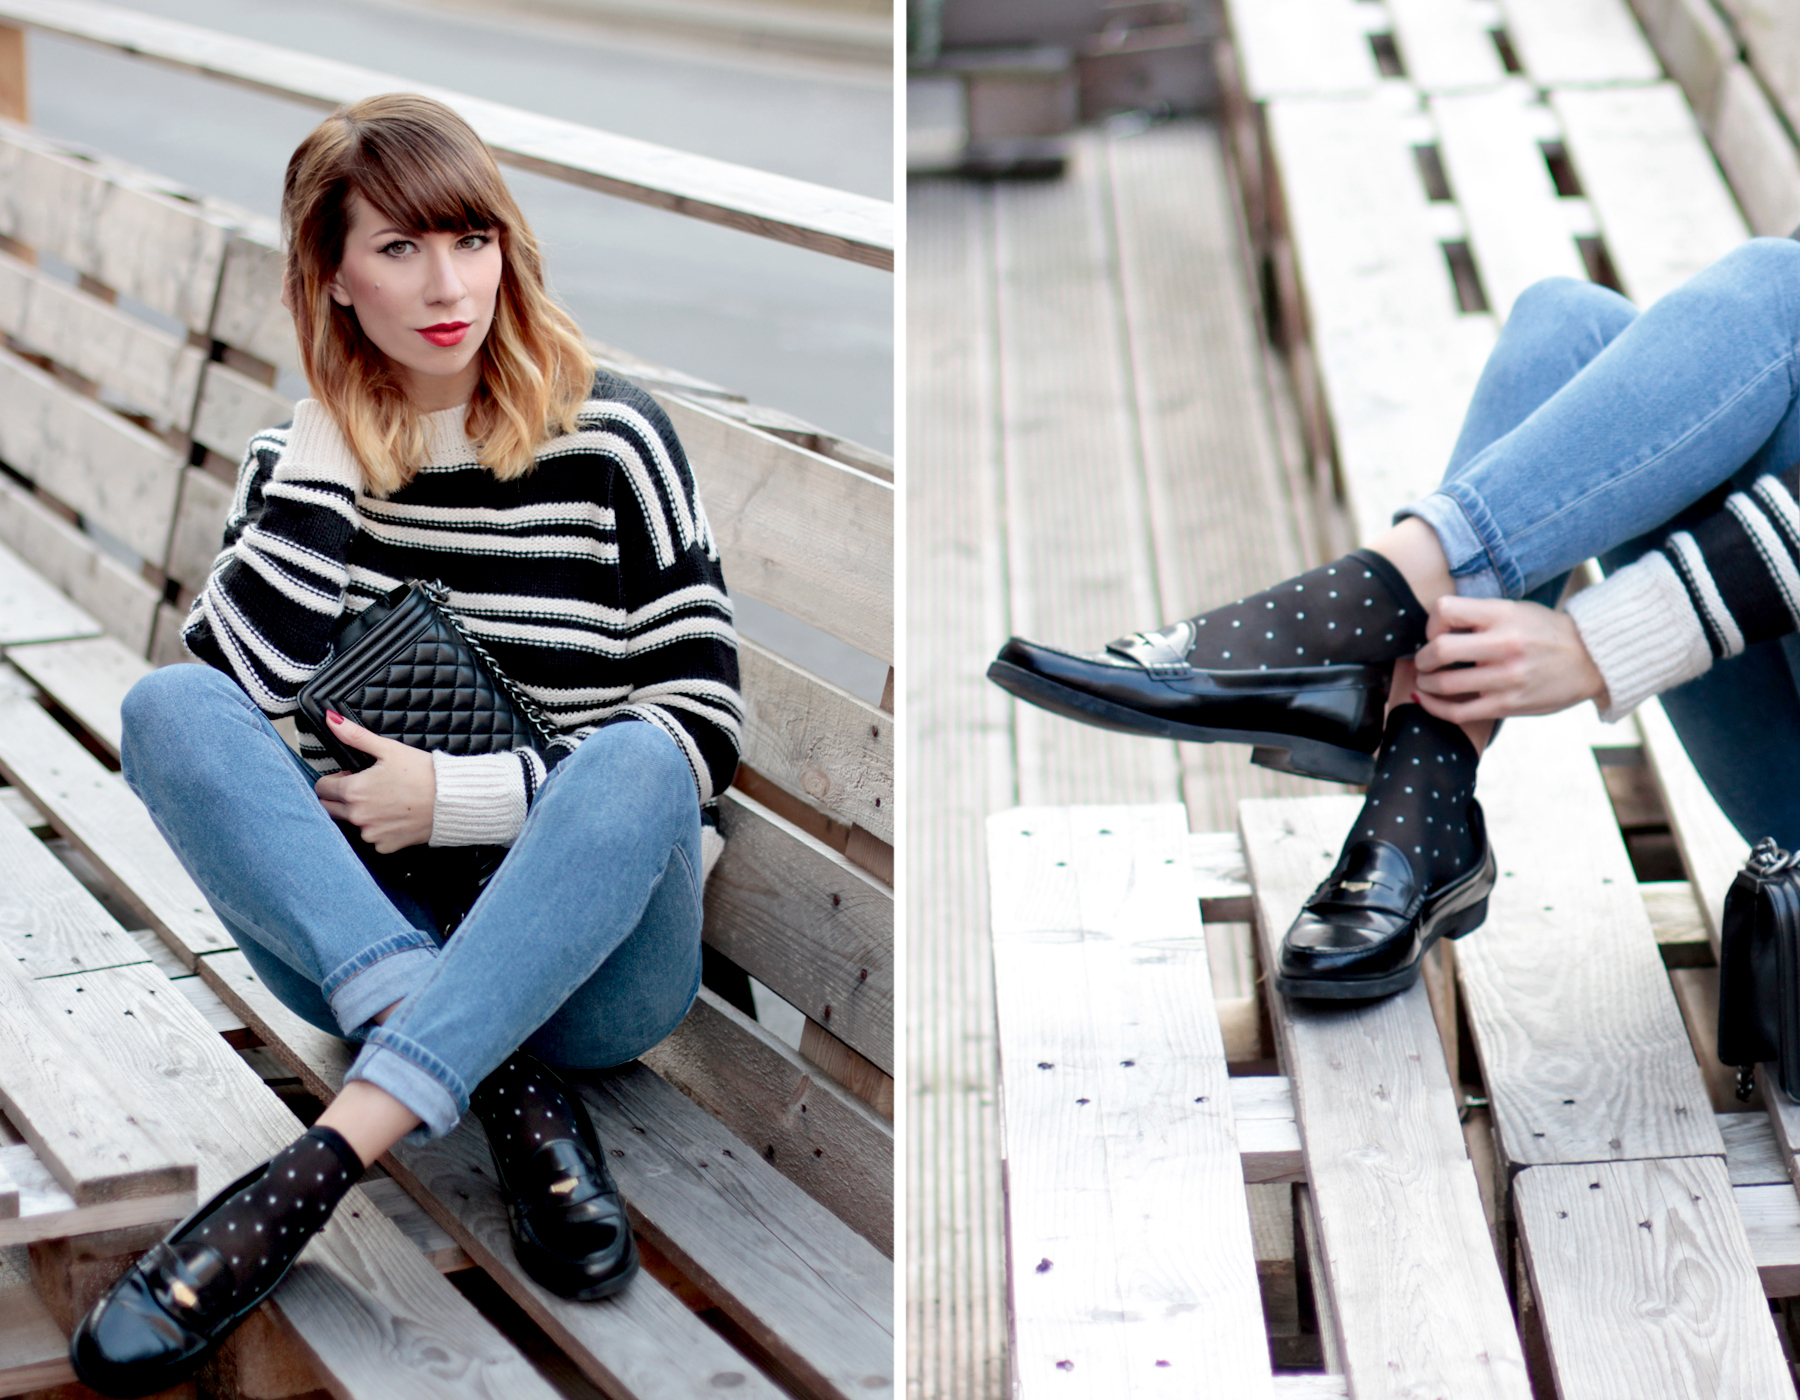 gant penny loafers h&m striped knit breton bretagne parisian style chanel le boy bag tailor swift style cute girl ricarda schernus fashionblogger cats & dogs blog6